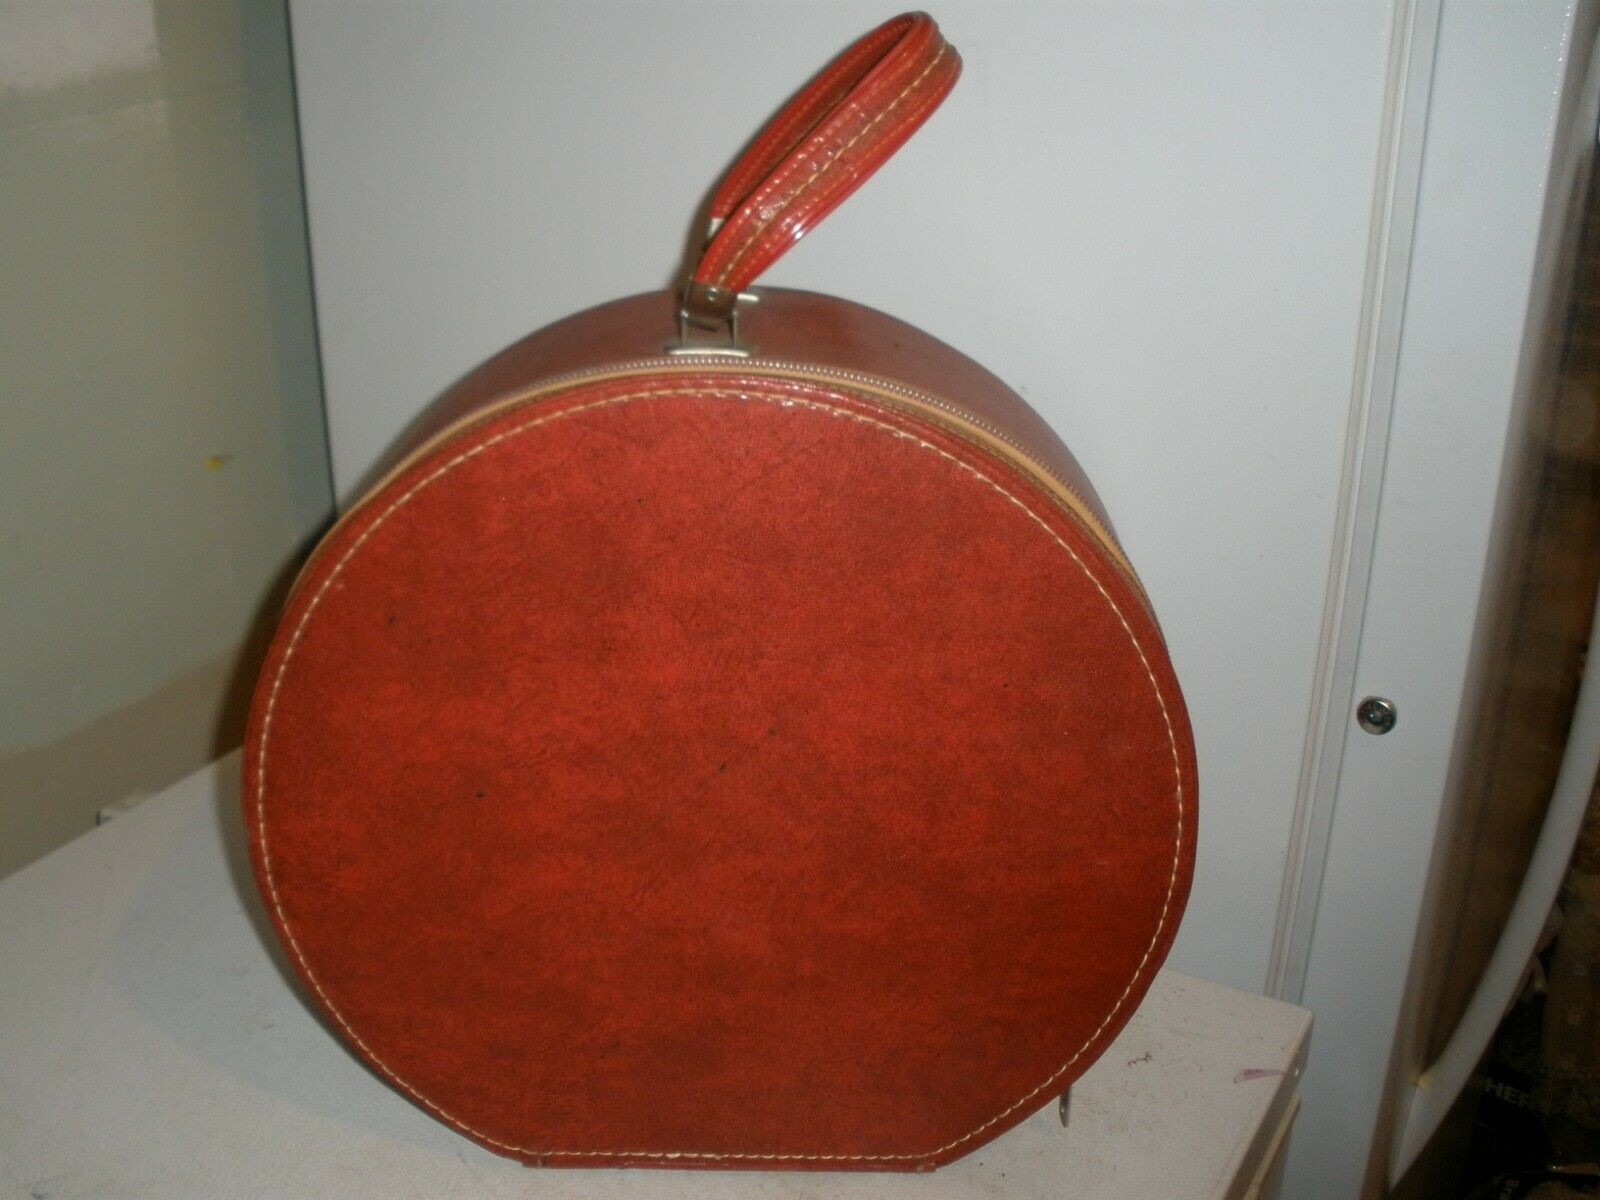 Vintage Travins rouge Zipper Train Case Hat Box with Handles 15  x 15  x 6.5   (H)